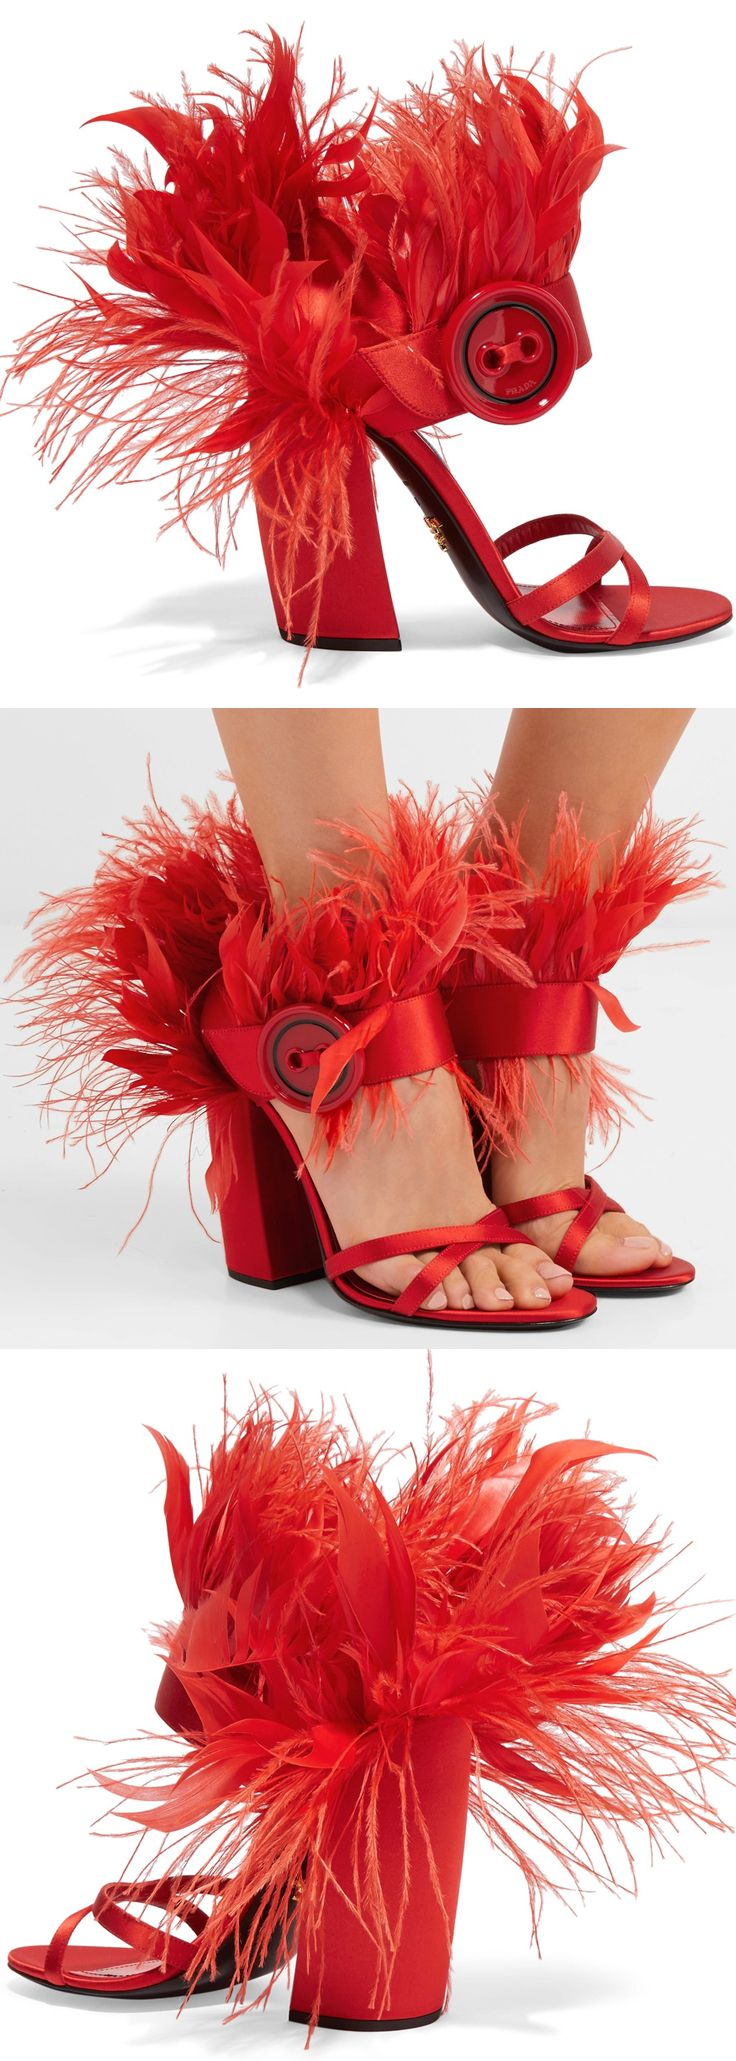 Feather-trimmed Satin Shoes - Sandals Red. Everyone's talking about beautiful ways designers are using feathers this season, and Prada defined the trend with its Fall '17 runway collection. These Italian-made sandals are embellished with red plumes, have an angled block heel and are decorated with an oversized button. For the show they were paired with midi skirt - styles that fall midi length work best. #feathers #frilly #shoes #shoesaddict #fallfashion #fashionista...